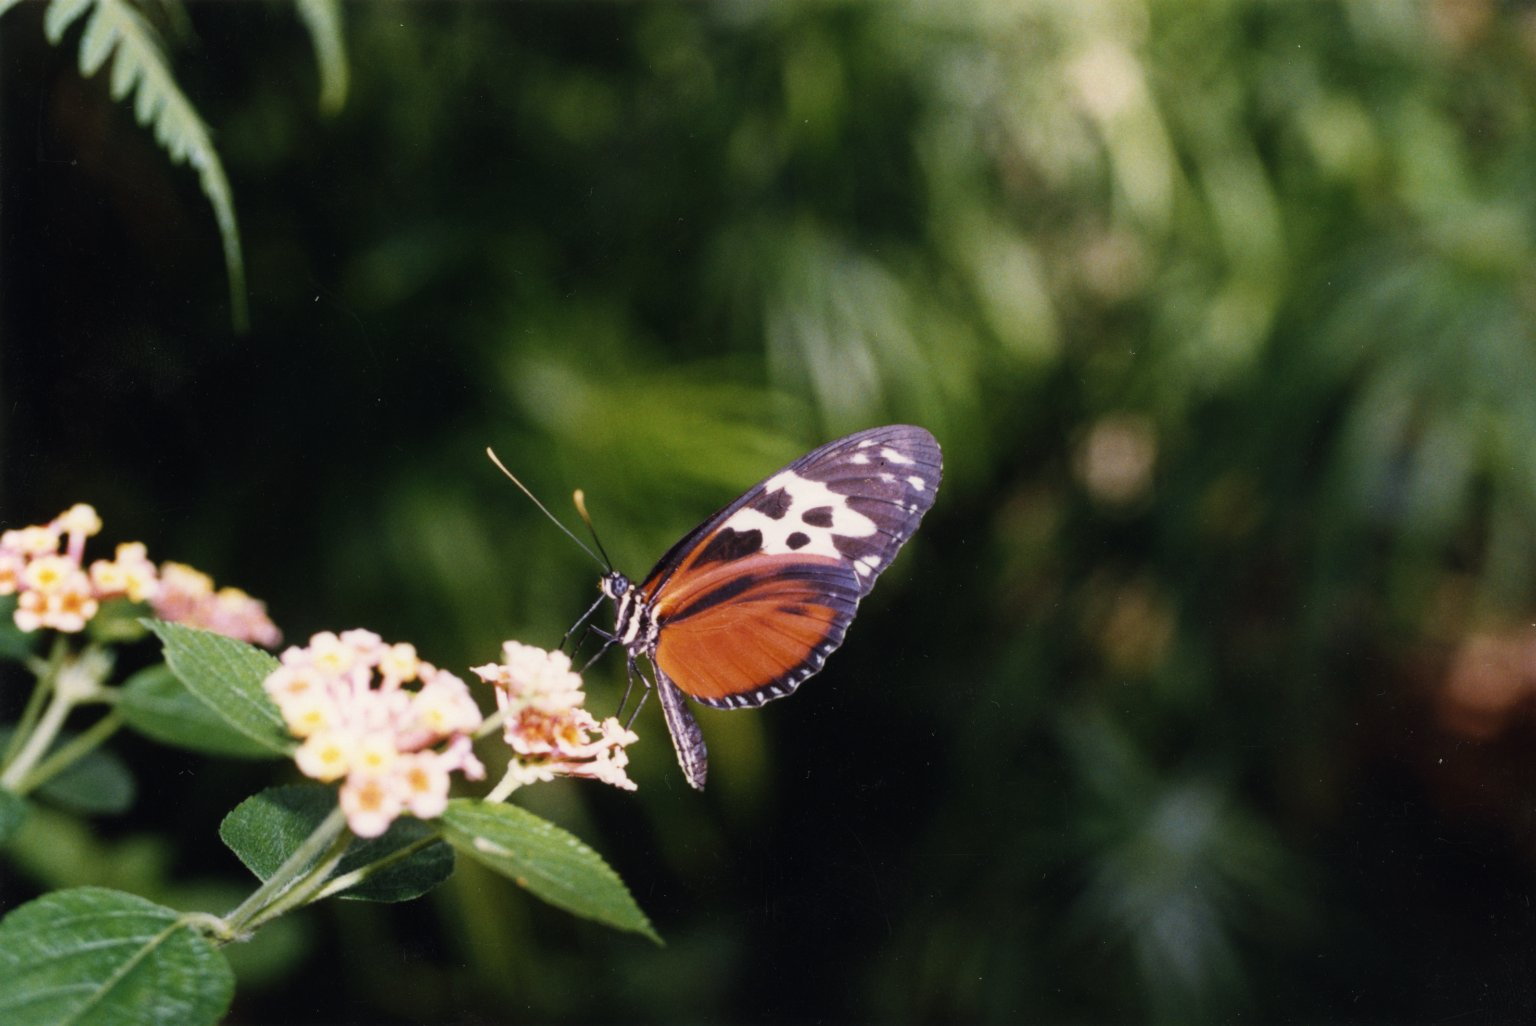 Close up of orange, black, and white butterfly on white flowers